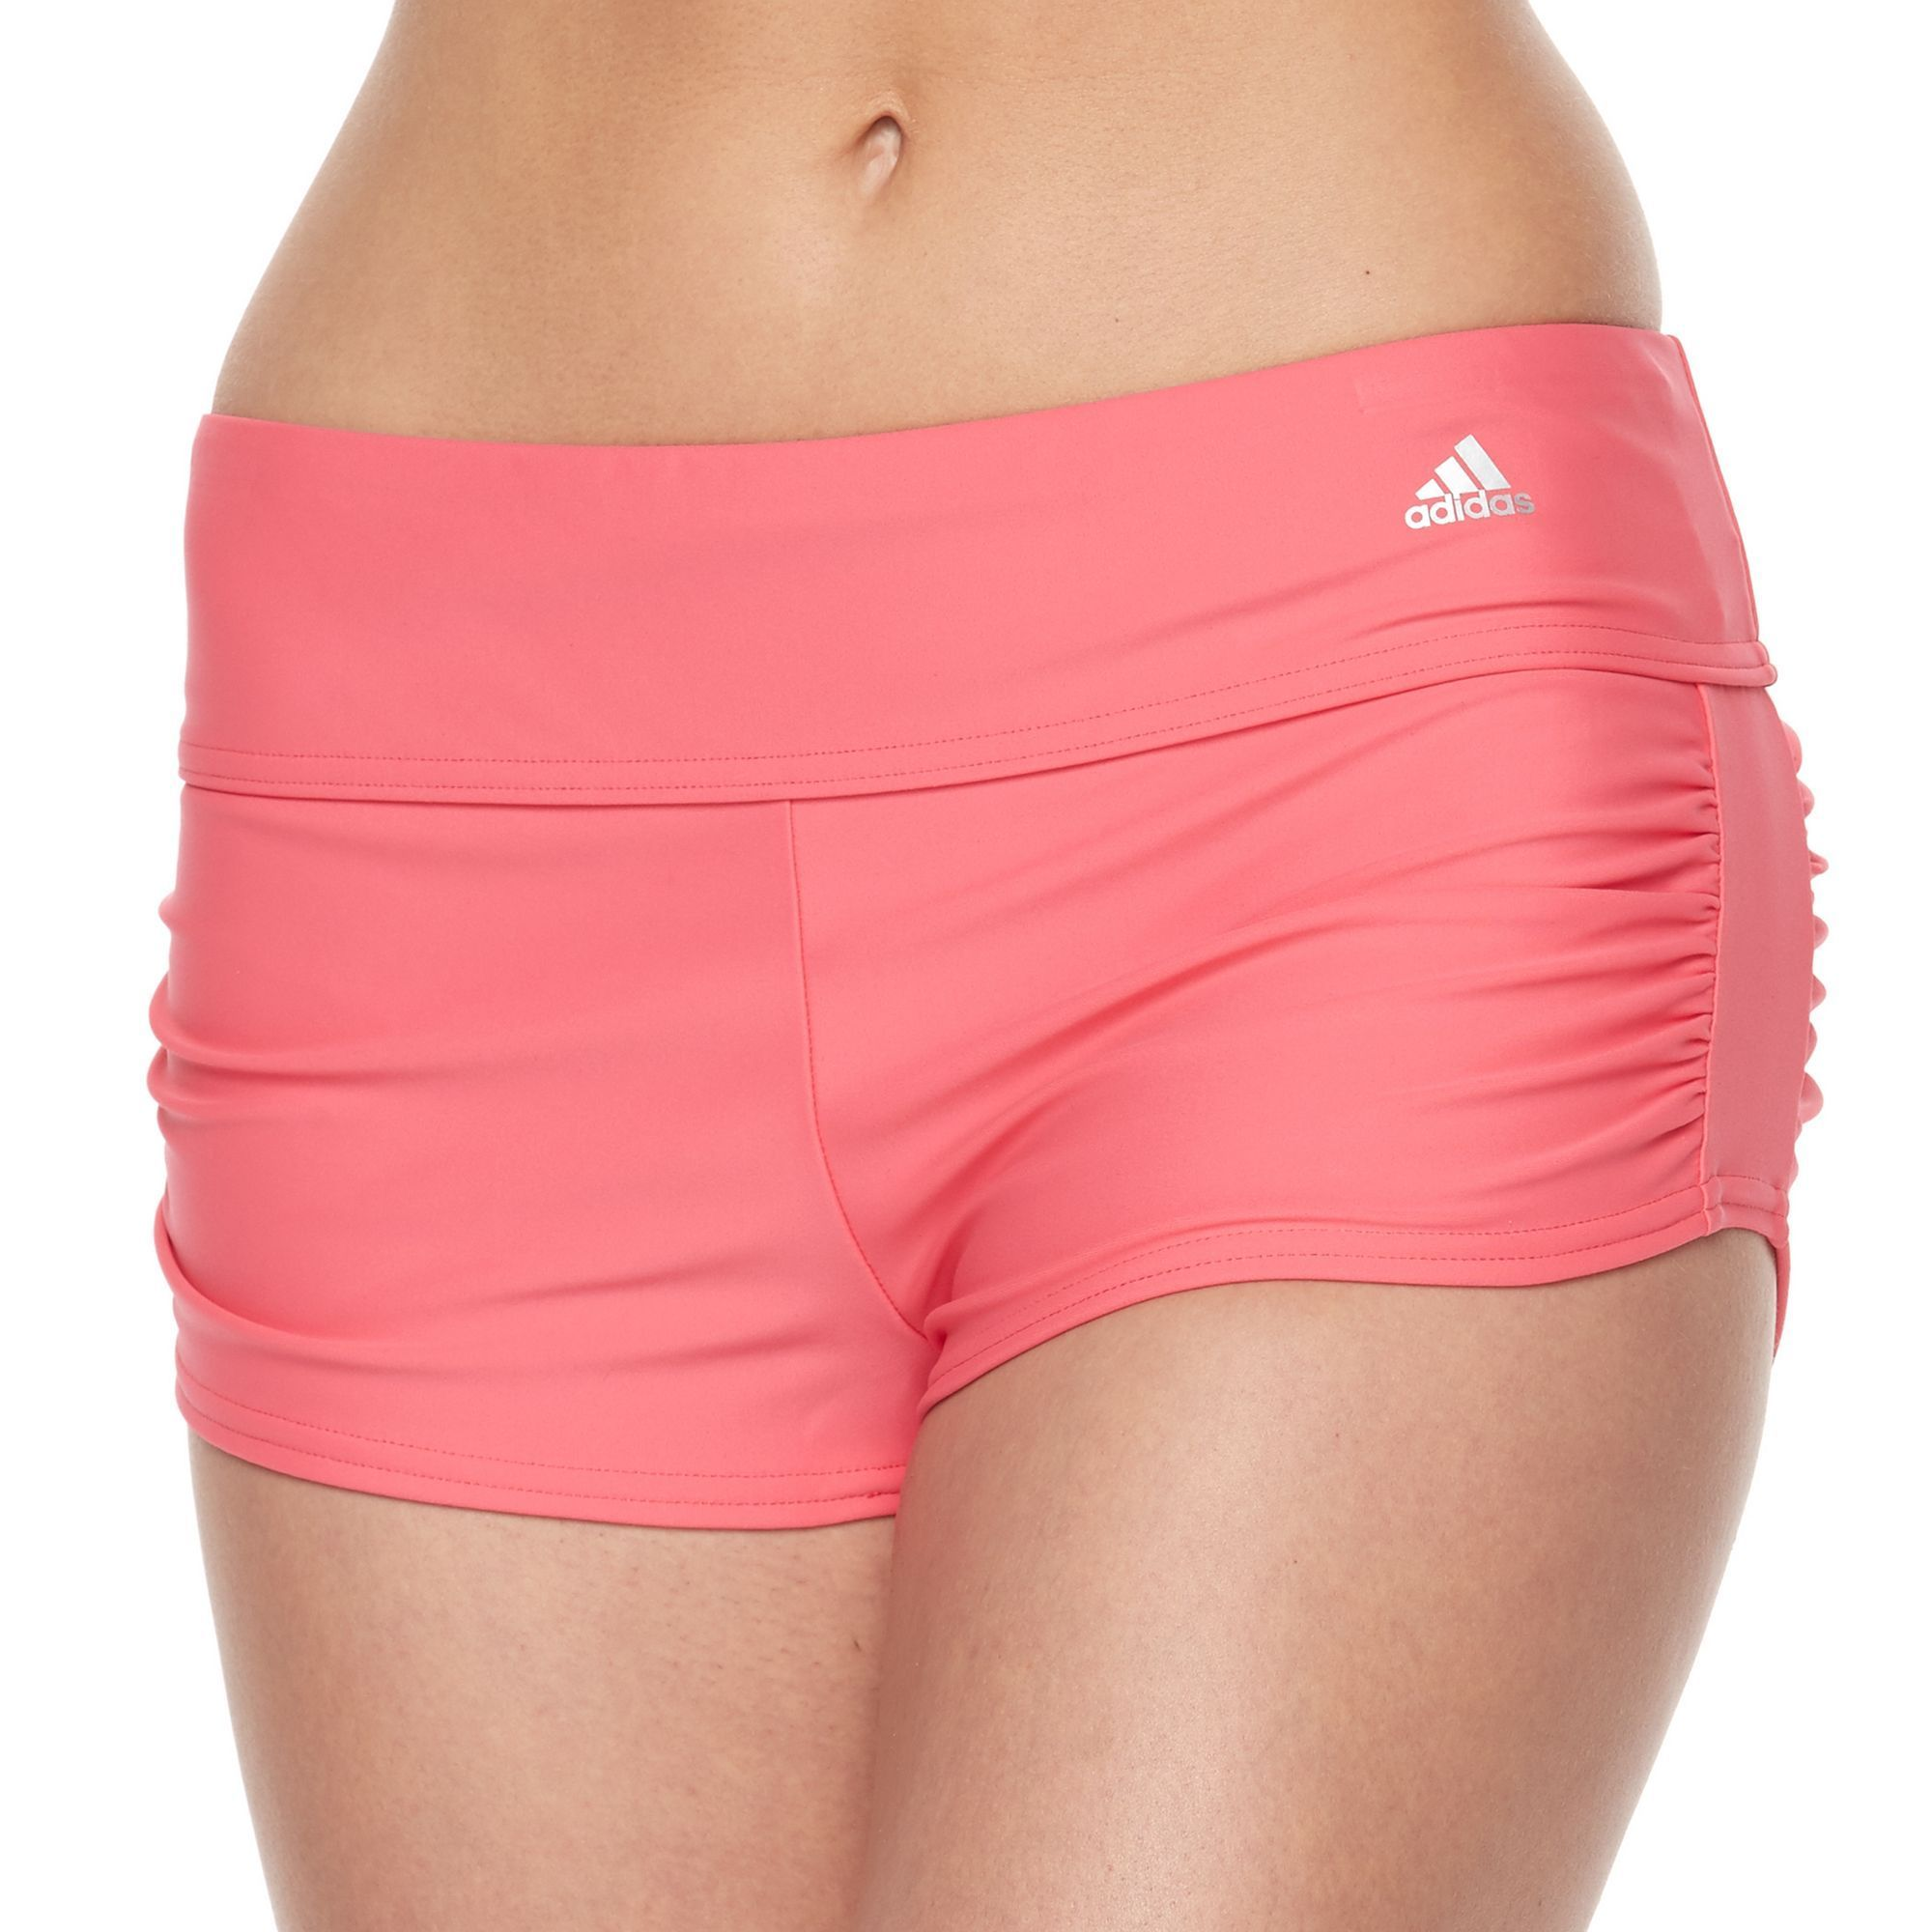 88c4930e36 Women's adidas Shirred Swim Shorts in 2019 | Products | Swim shorts ...